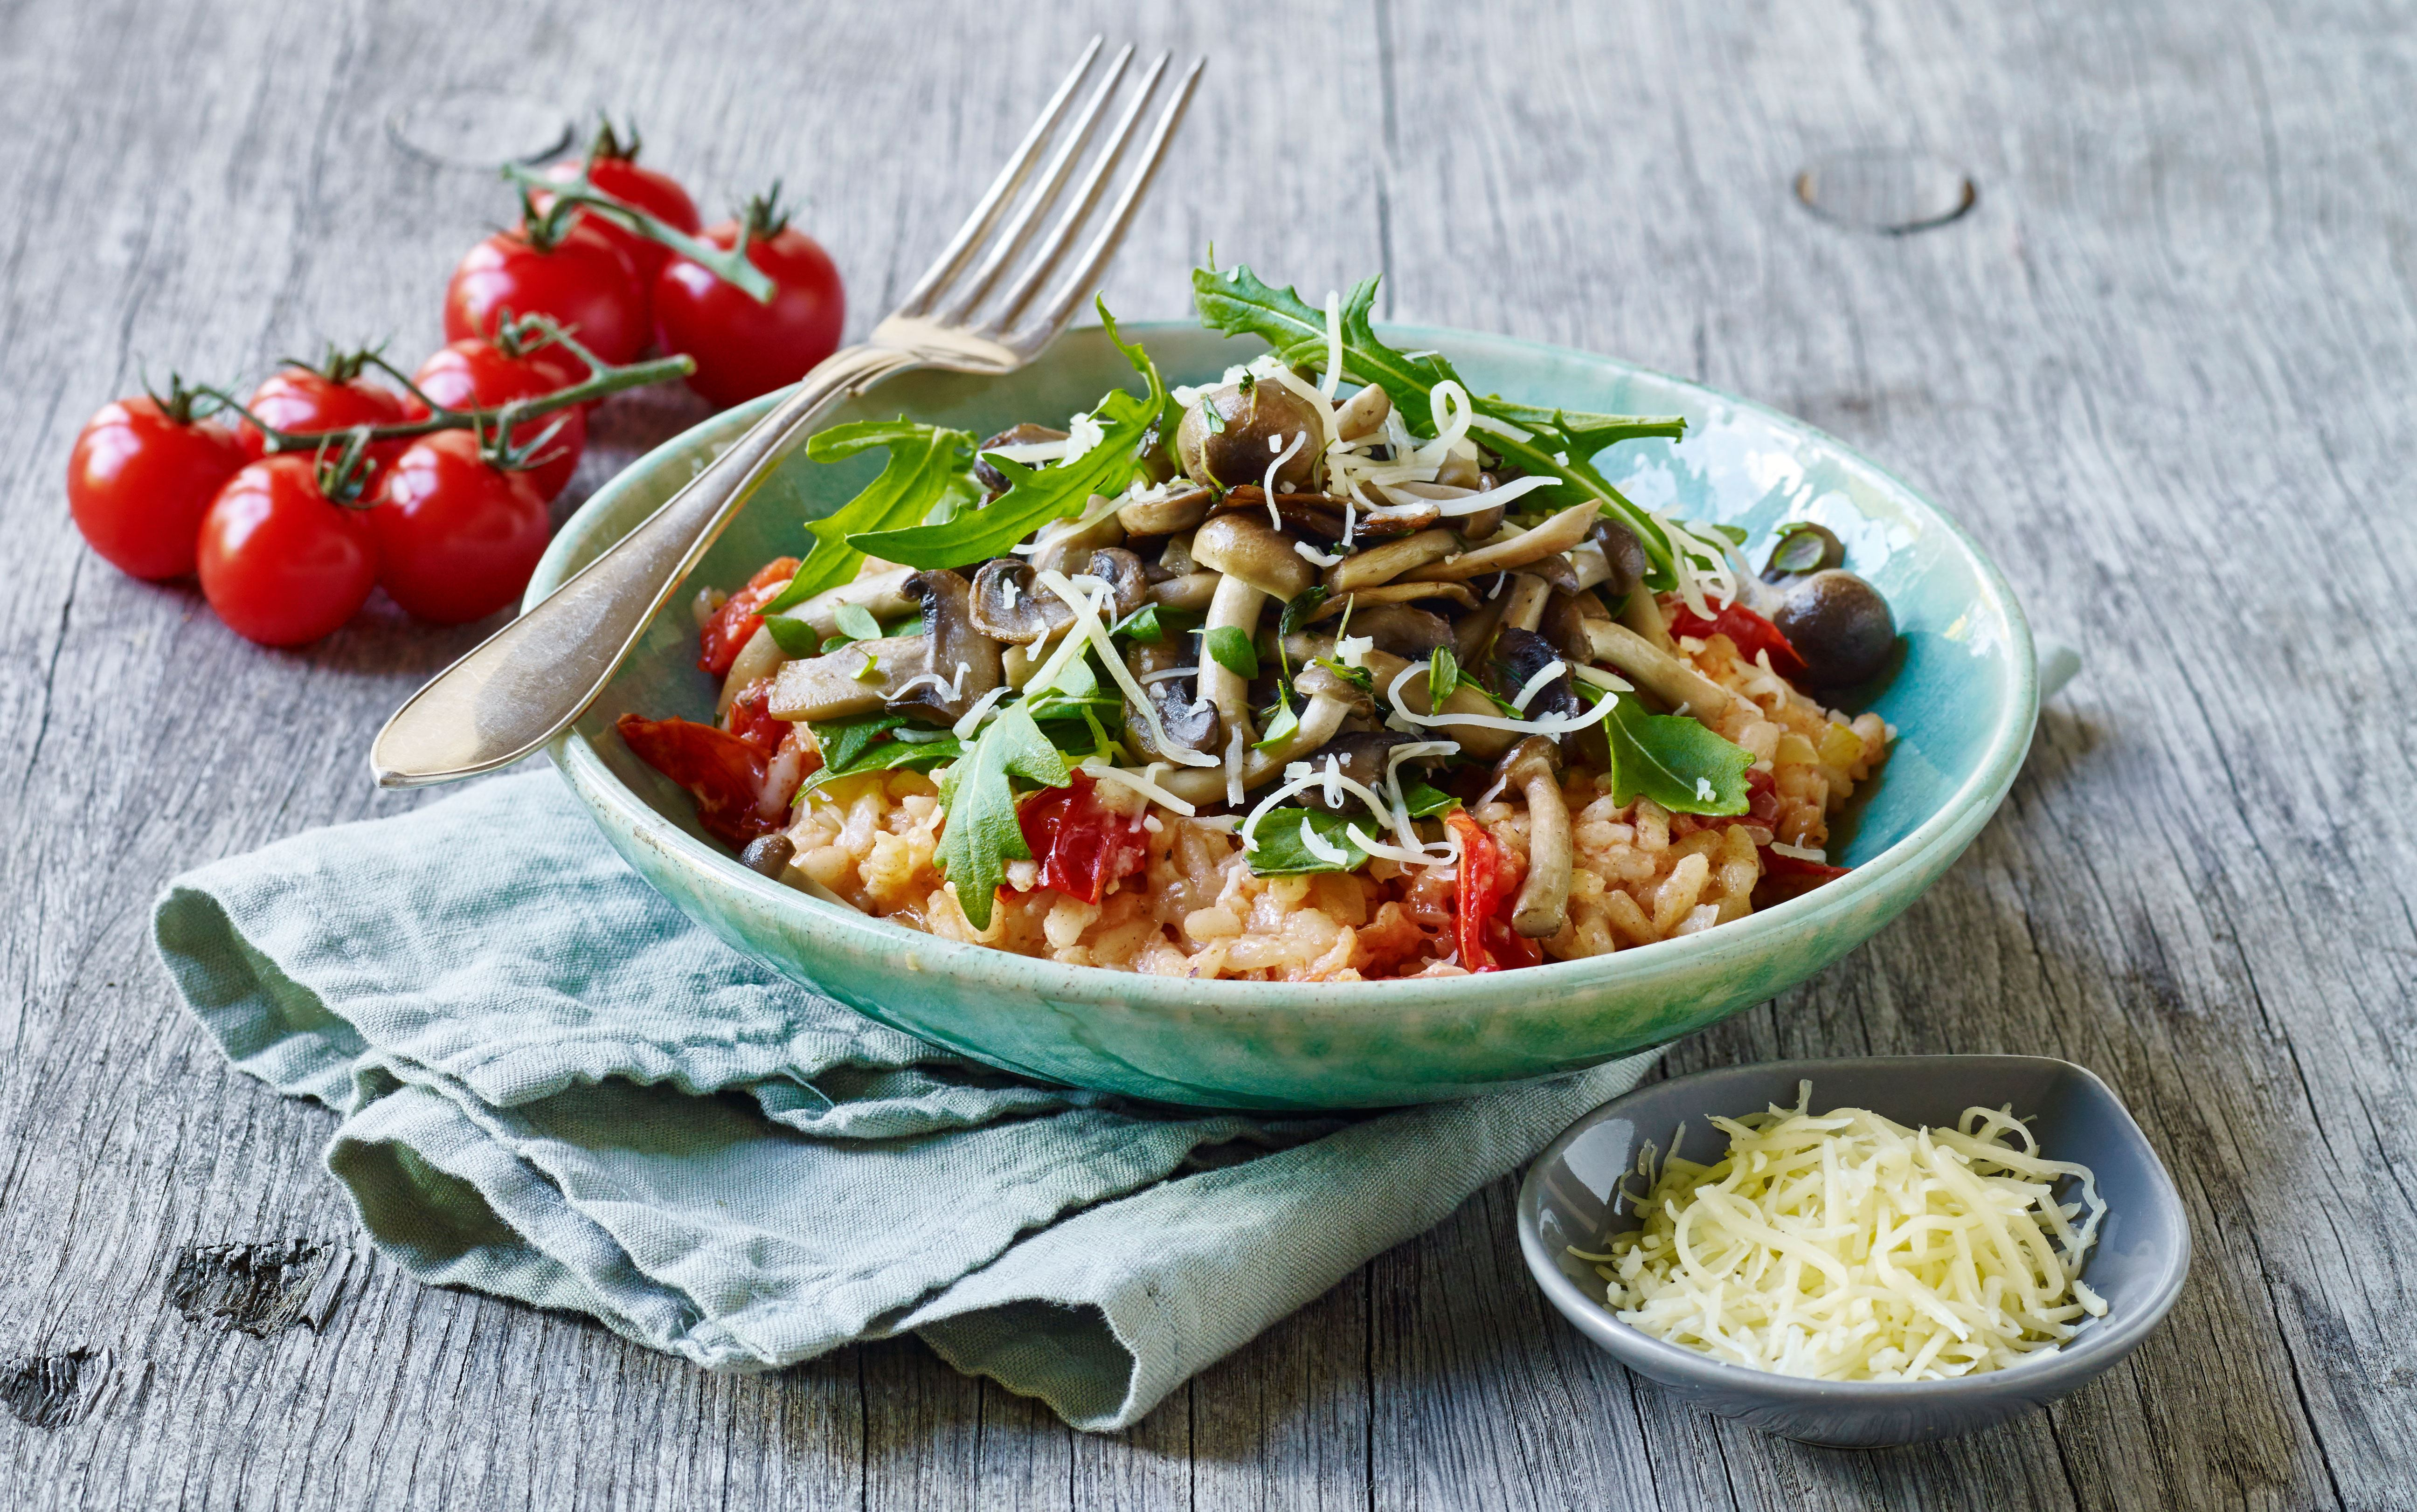 Tomatrisotto med svampetopping